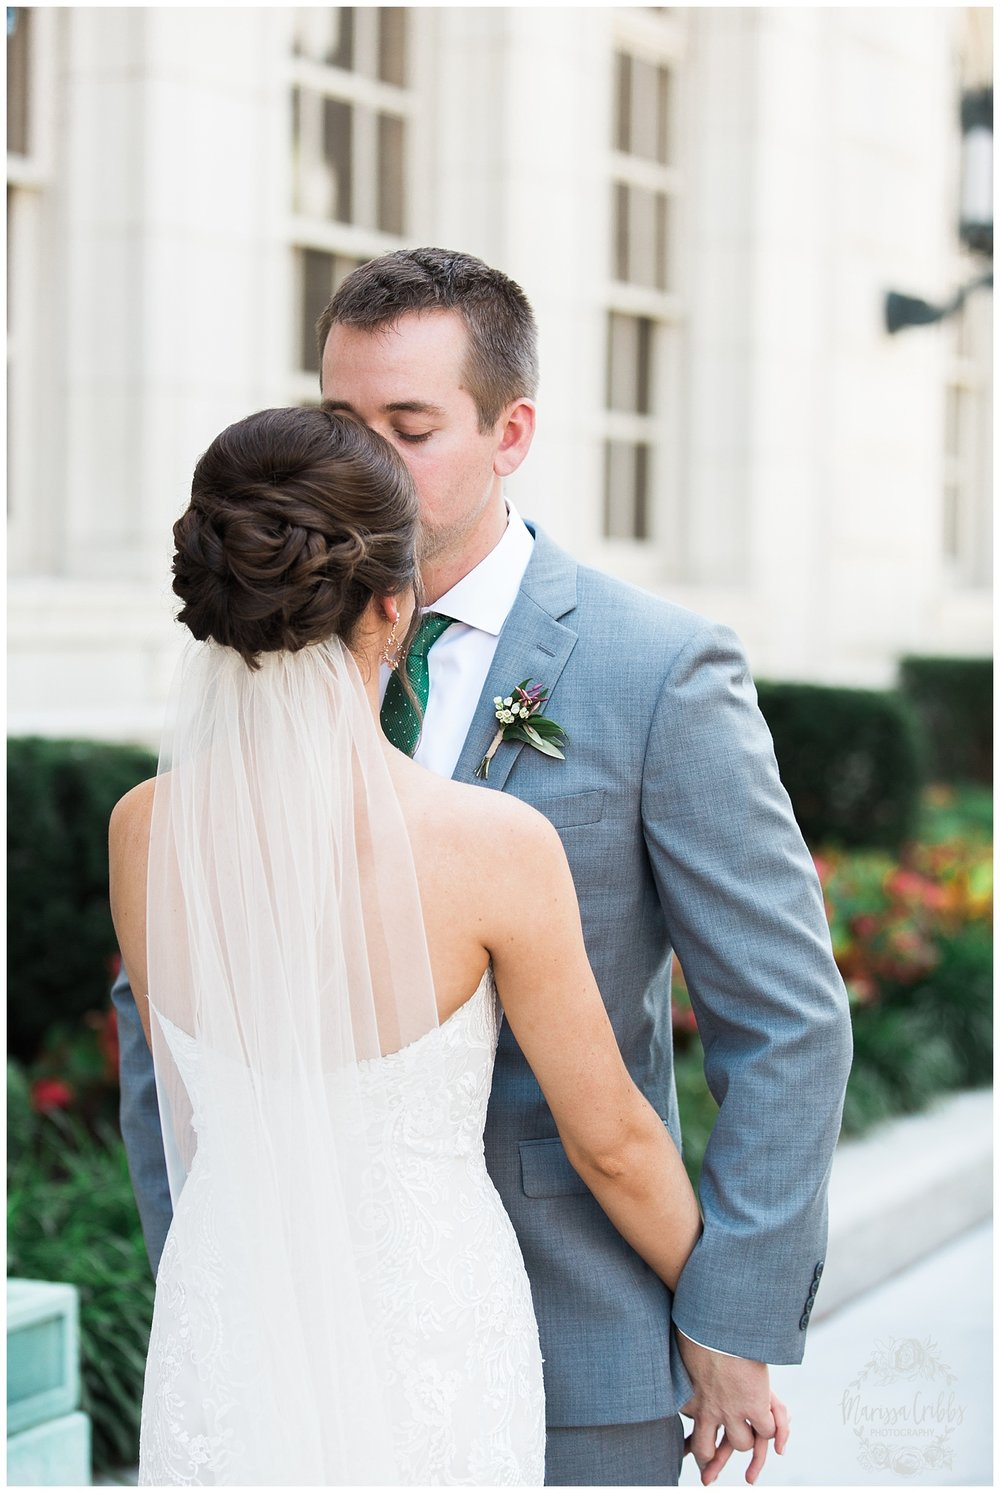 FEASTS OF FANCY KC WEDDING | THE HOBBS WEDDING KANSAS CITY | MARISSA CRIBBS PHOTOGRAPHY_2179.jpg